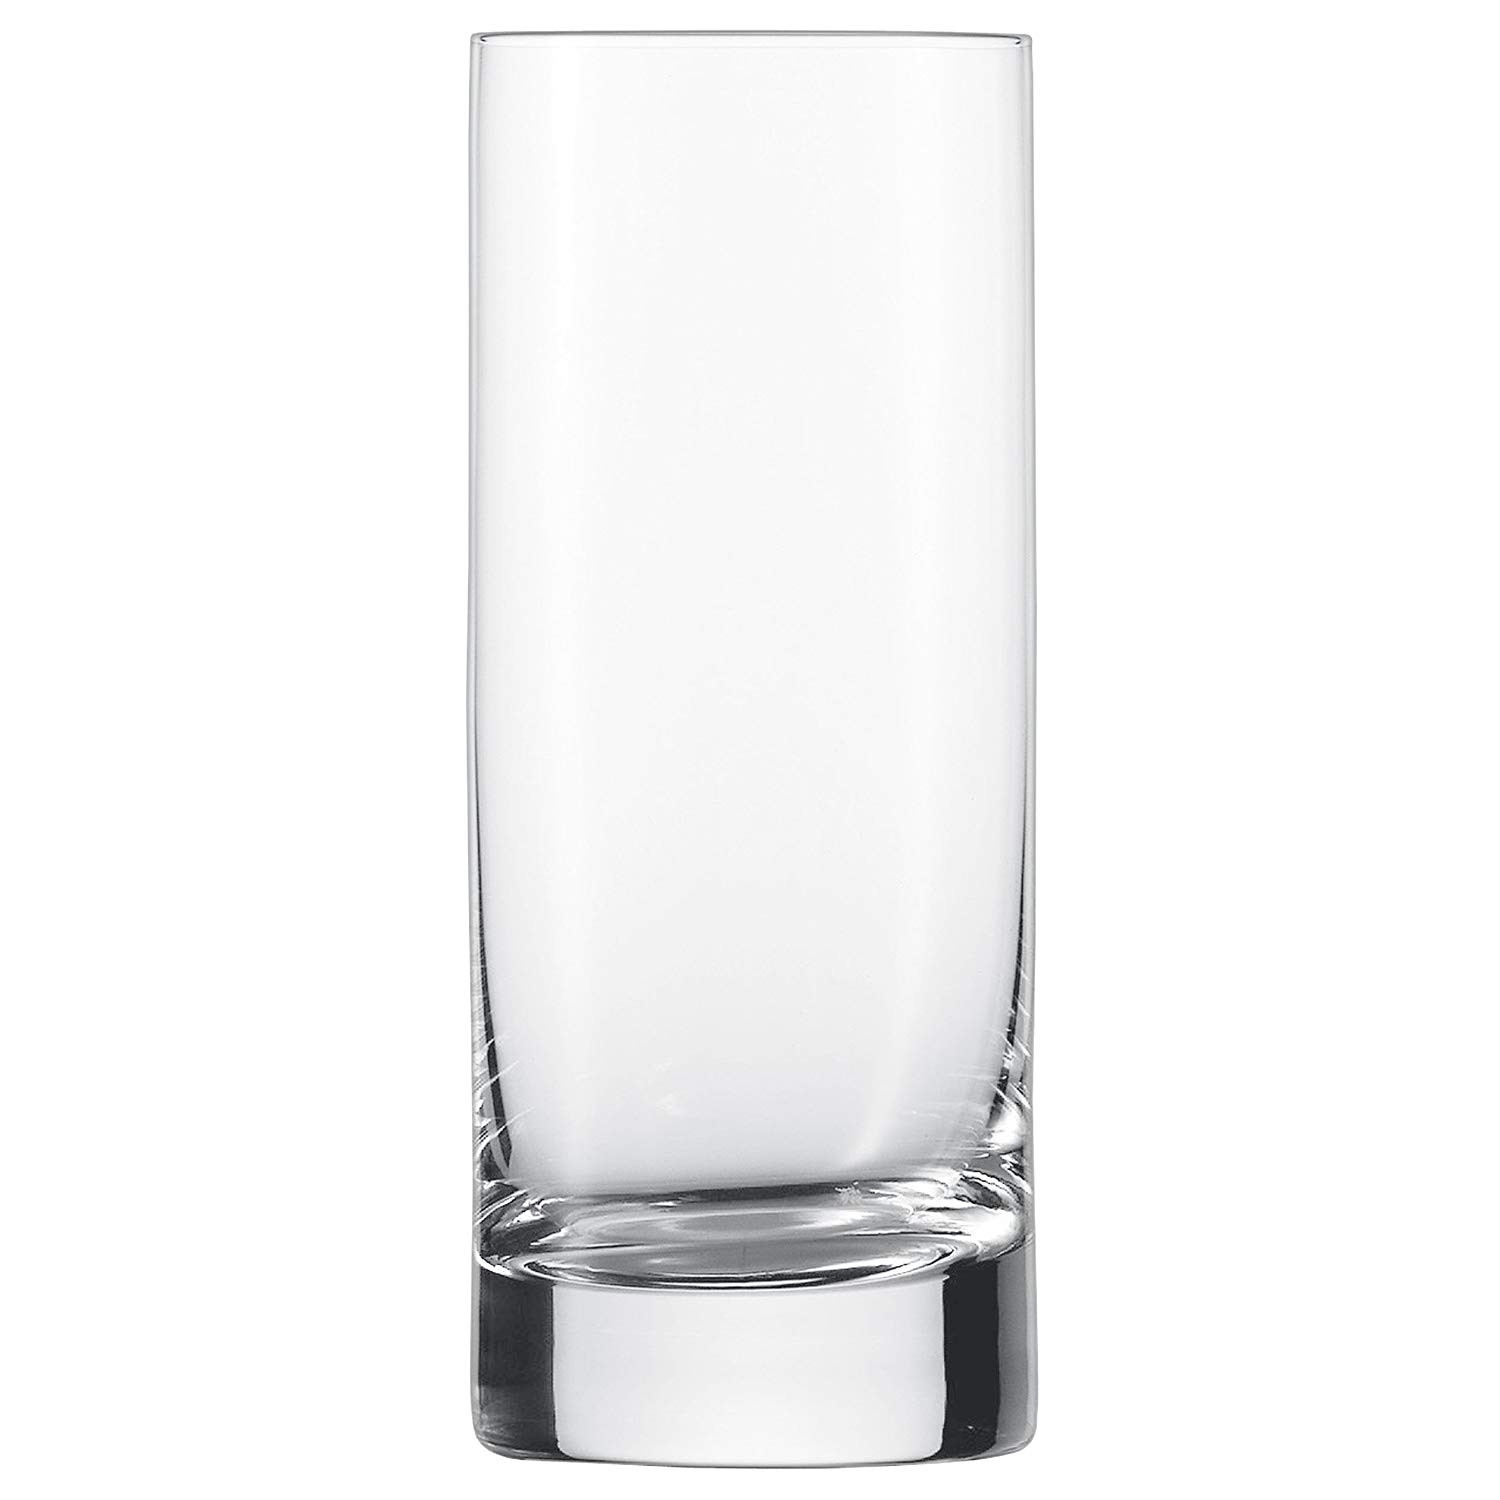 short square glass vases bulk of amazon com schott zwiesel tritan crystal glass paris barware within amazon com schott zwiesel tritan crystal glass paris barware collection collins long drink cocktail glass 11 1 ounce set of 6 old fashioned glasses